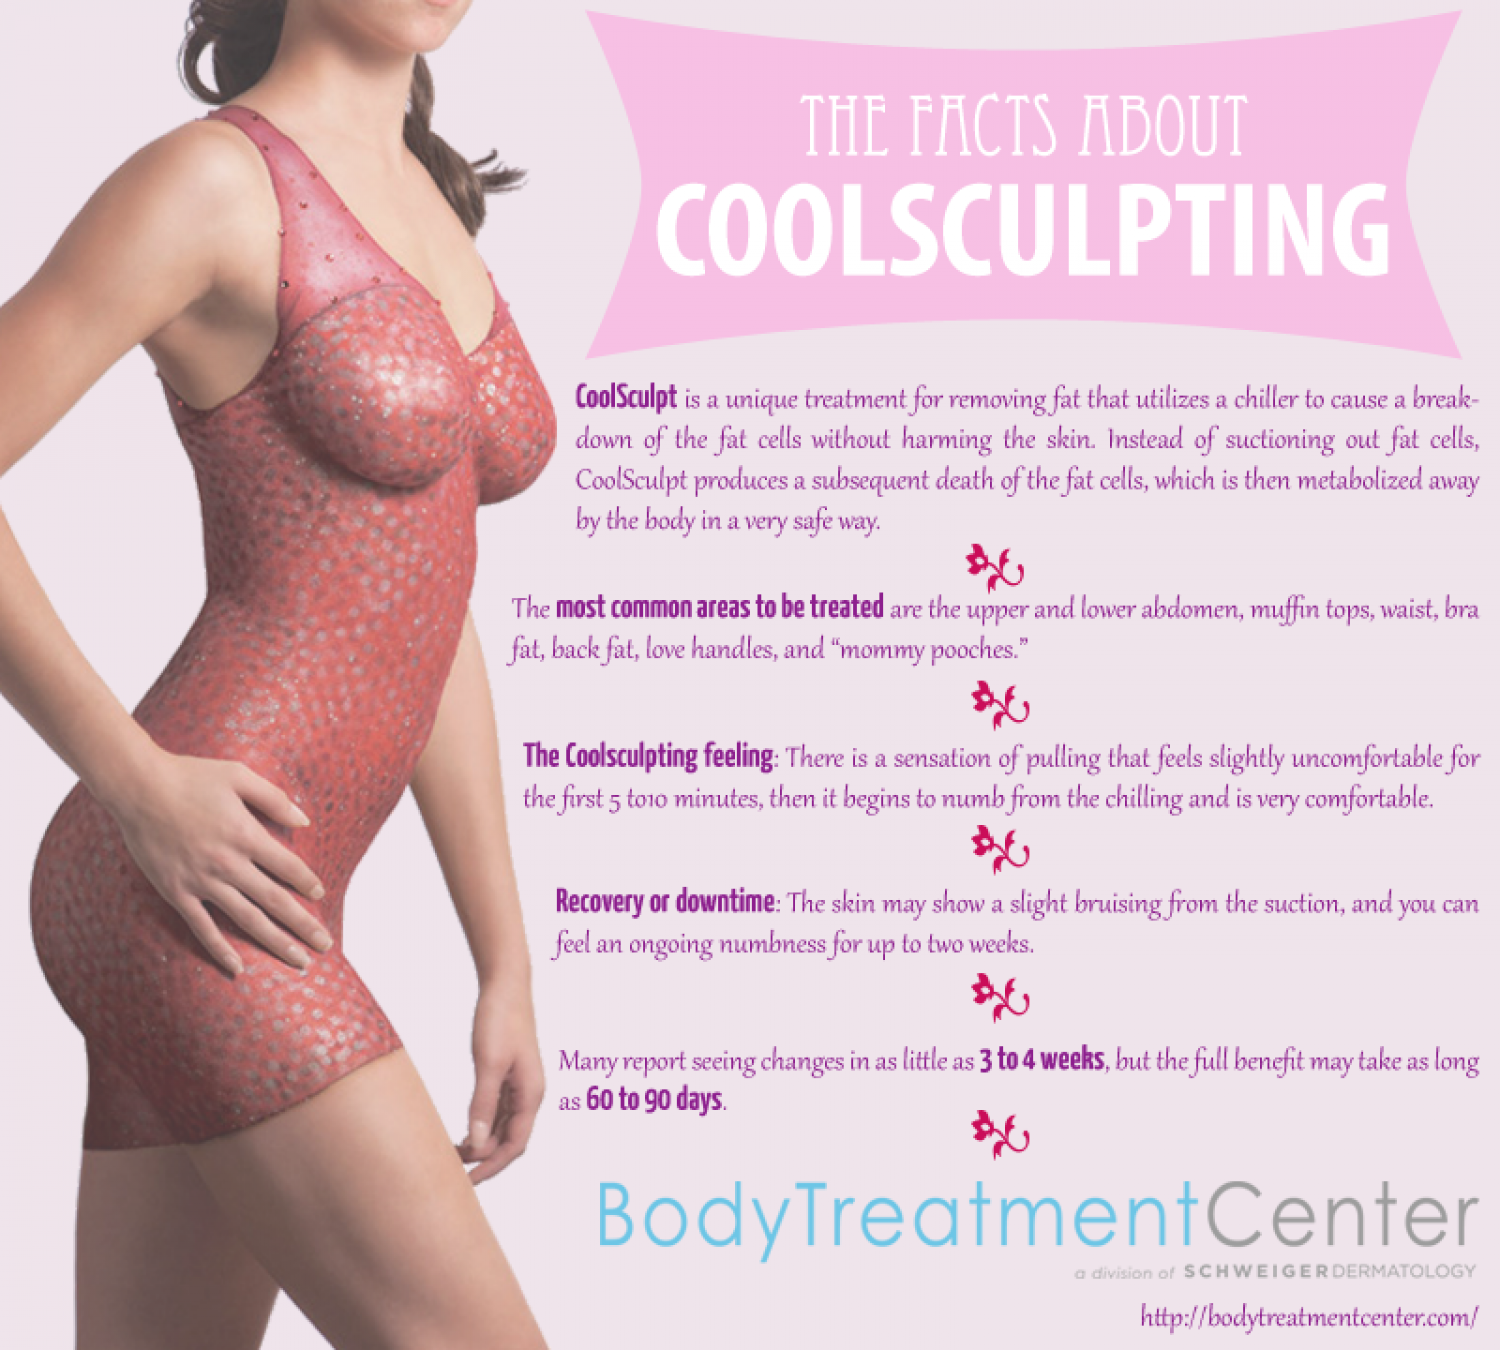 The Facts About Coolsculpting Infographic